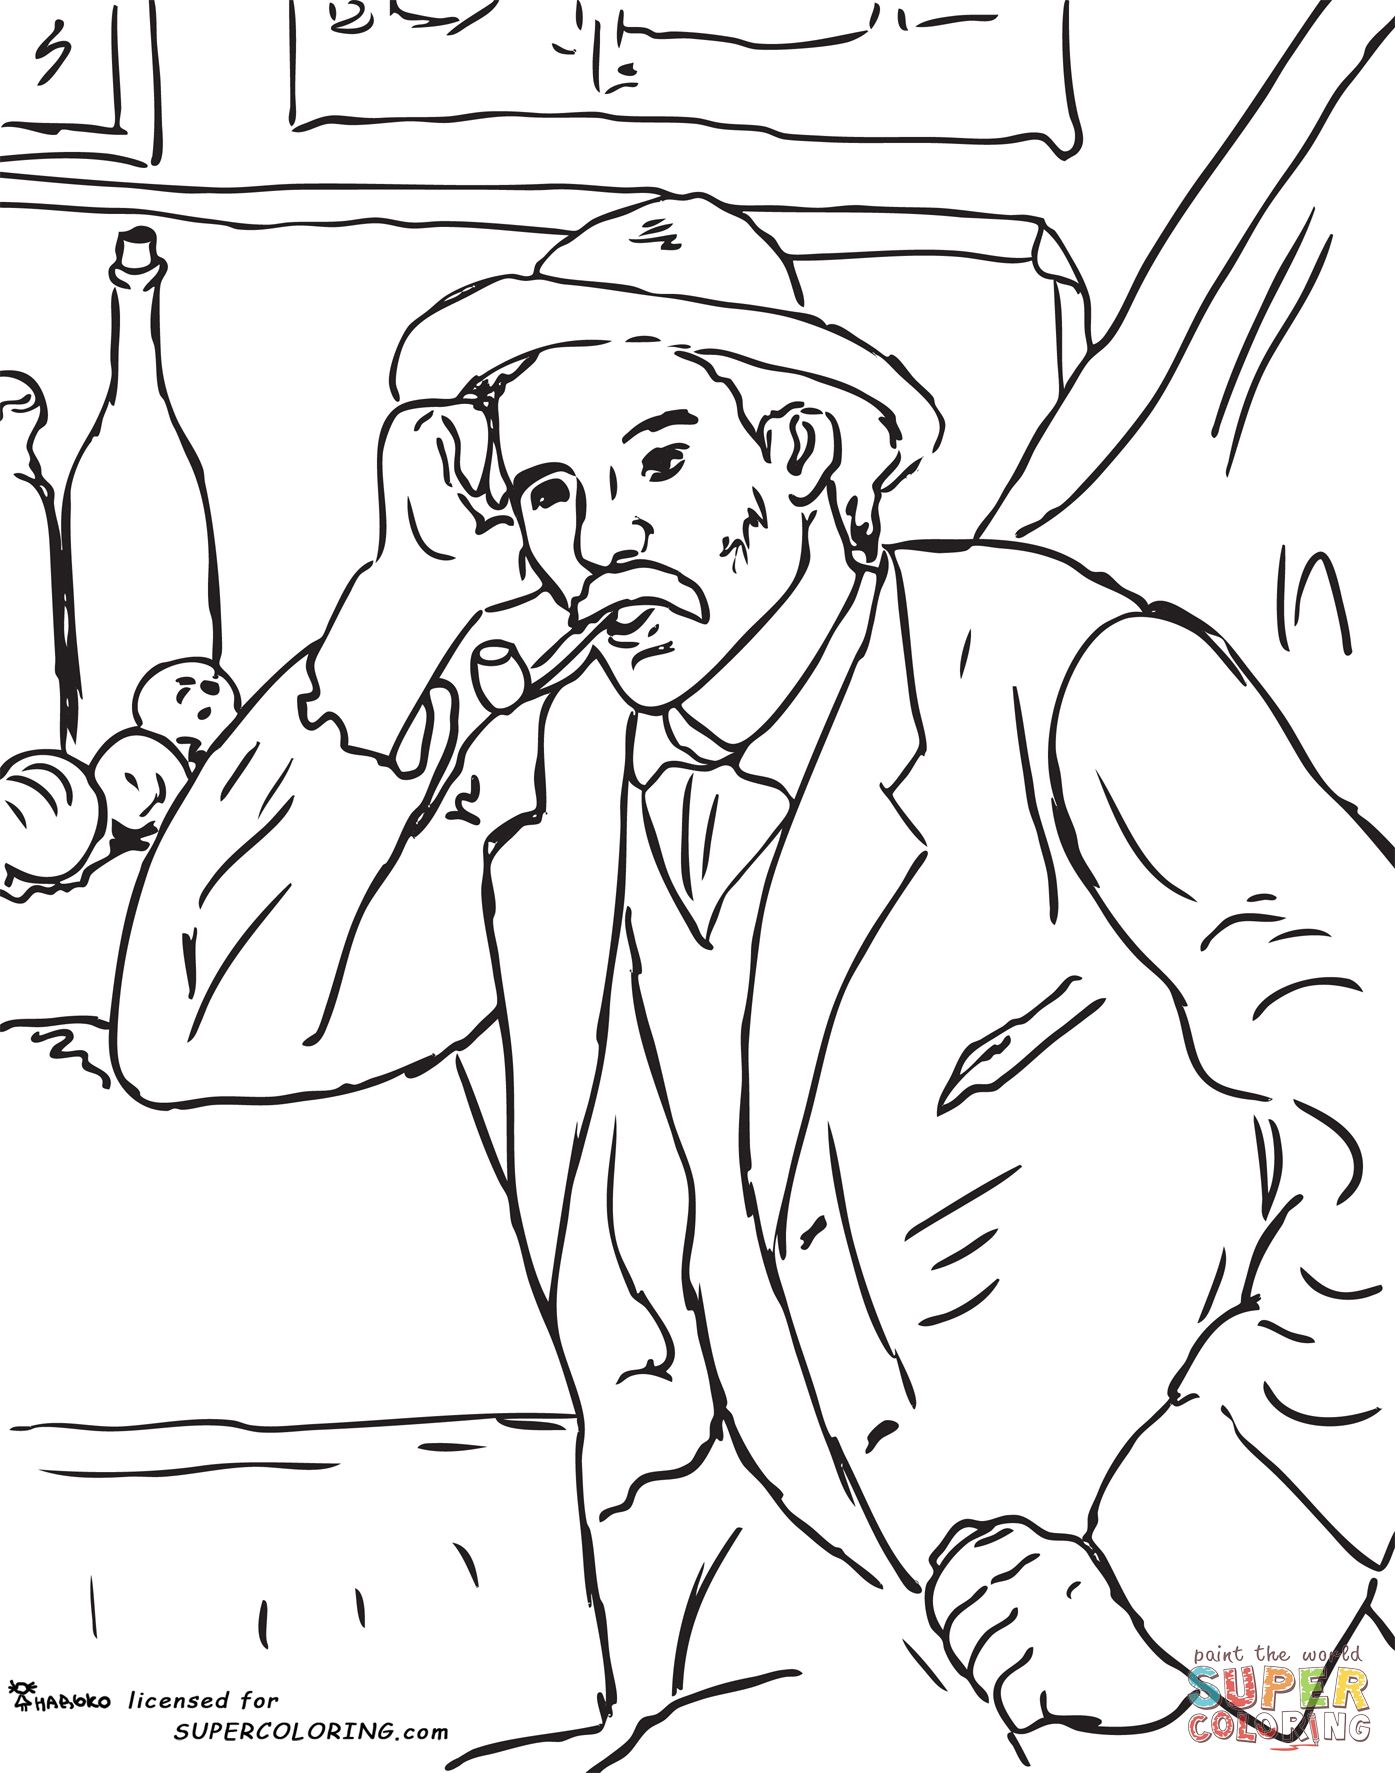 Man with a Pipe by Paul Cezanne coloring page | SuperColoring.com ...